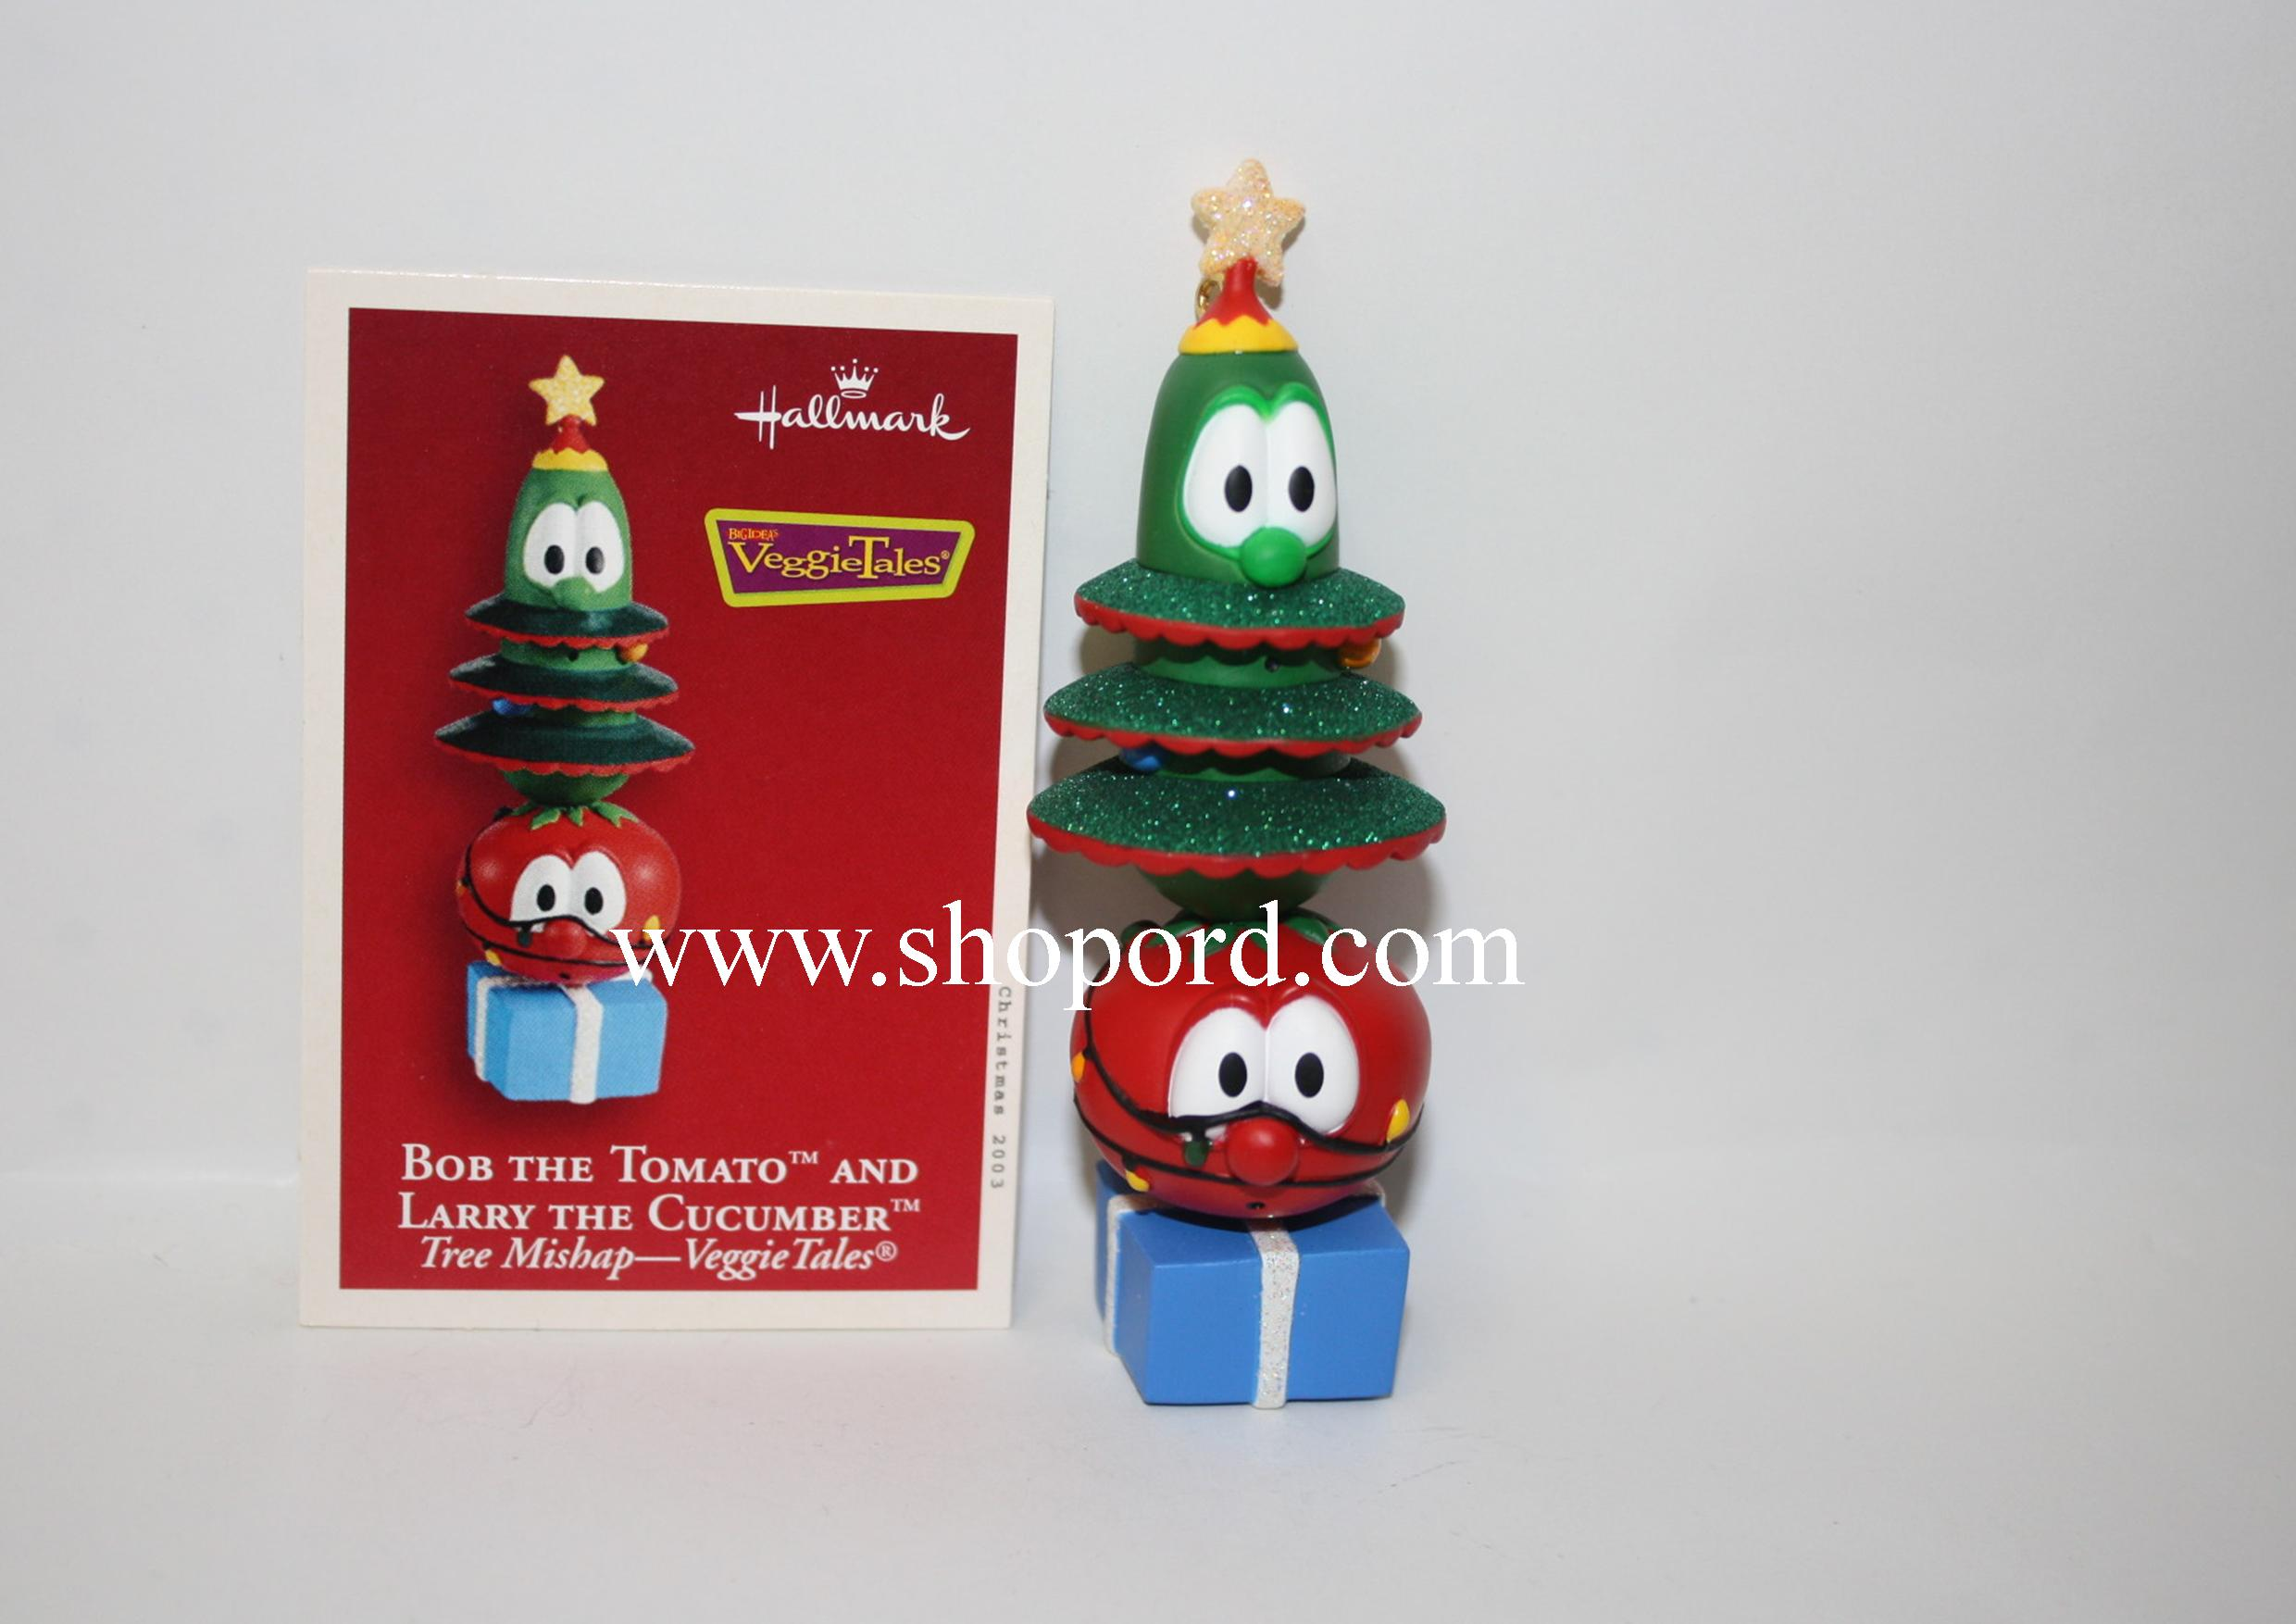 Hallmark 2003 Bob The Tomato And Larry The Cucumber Ornament Tree Mishap Veggie Tales QXI4337